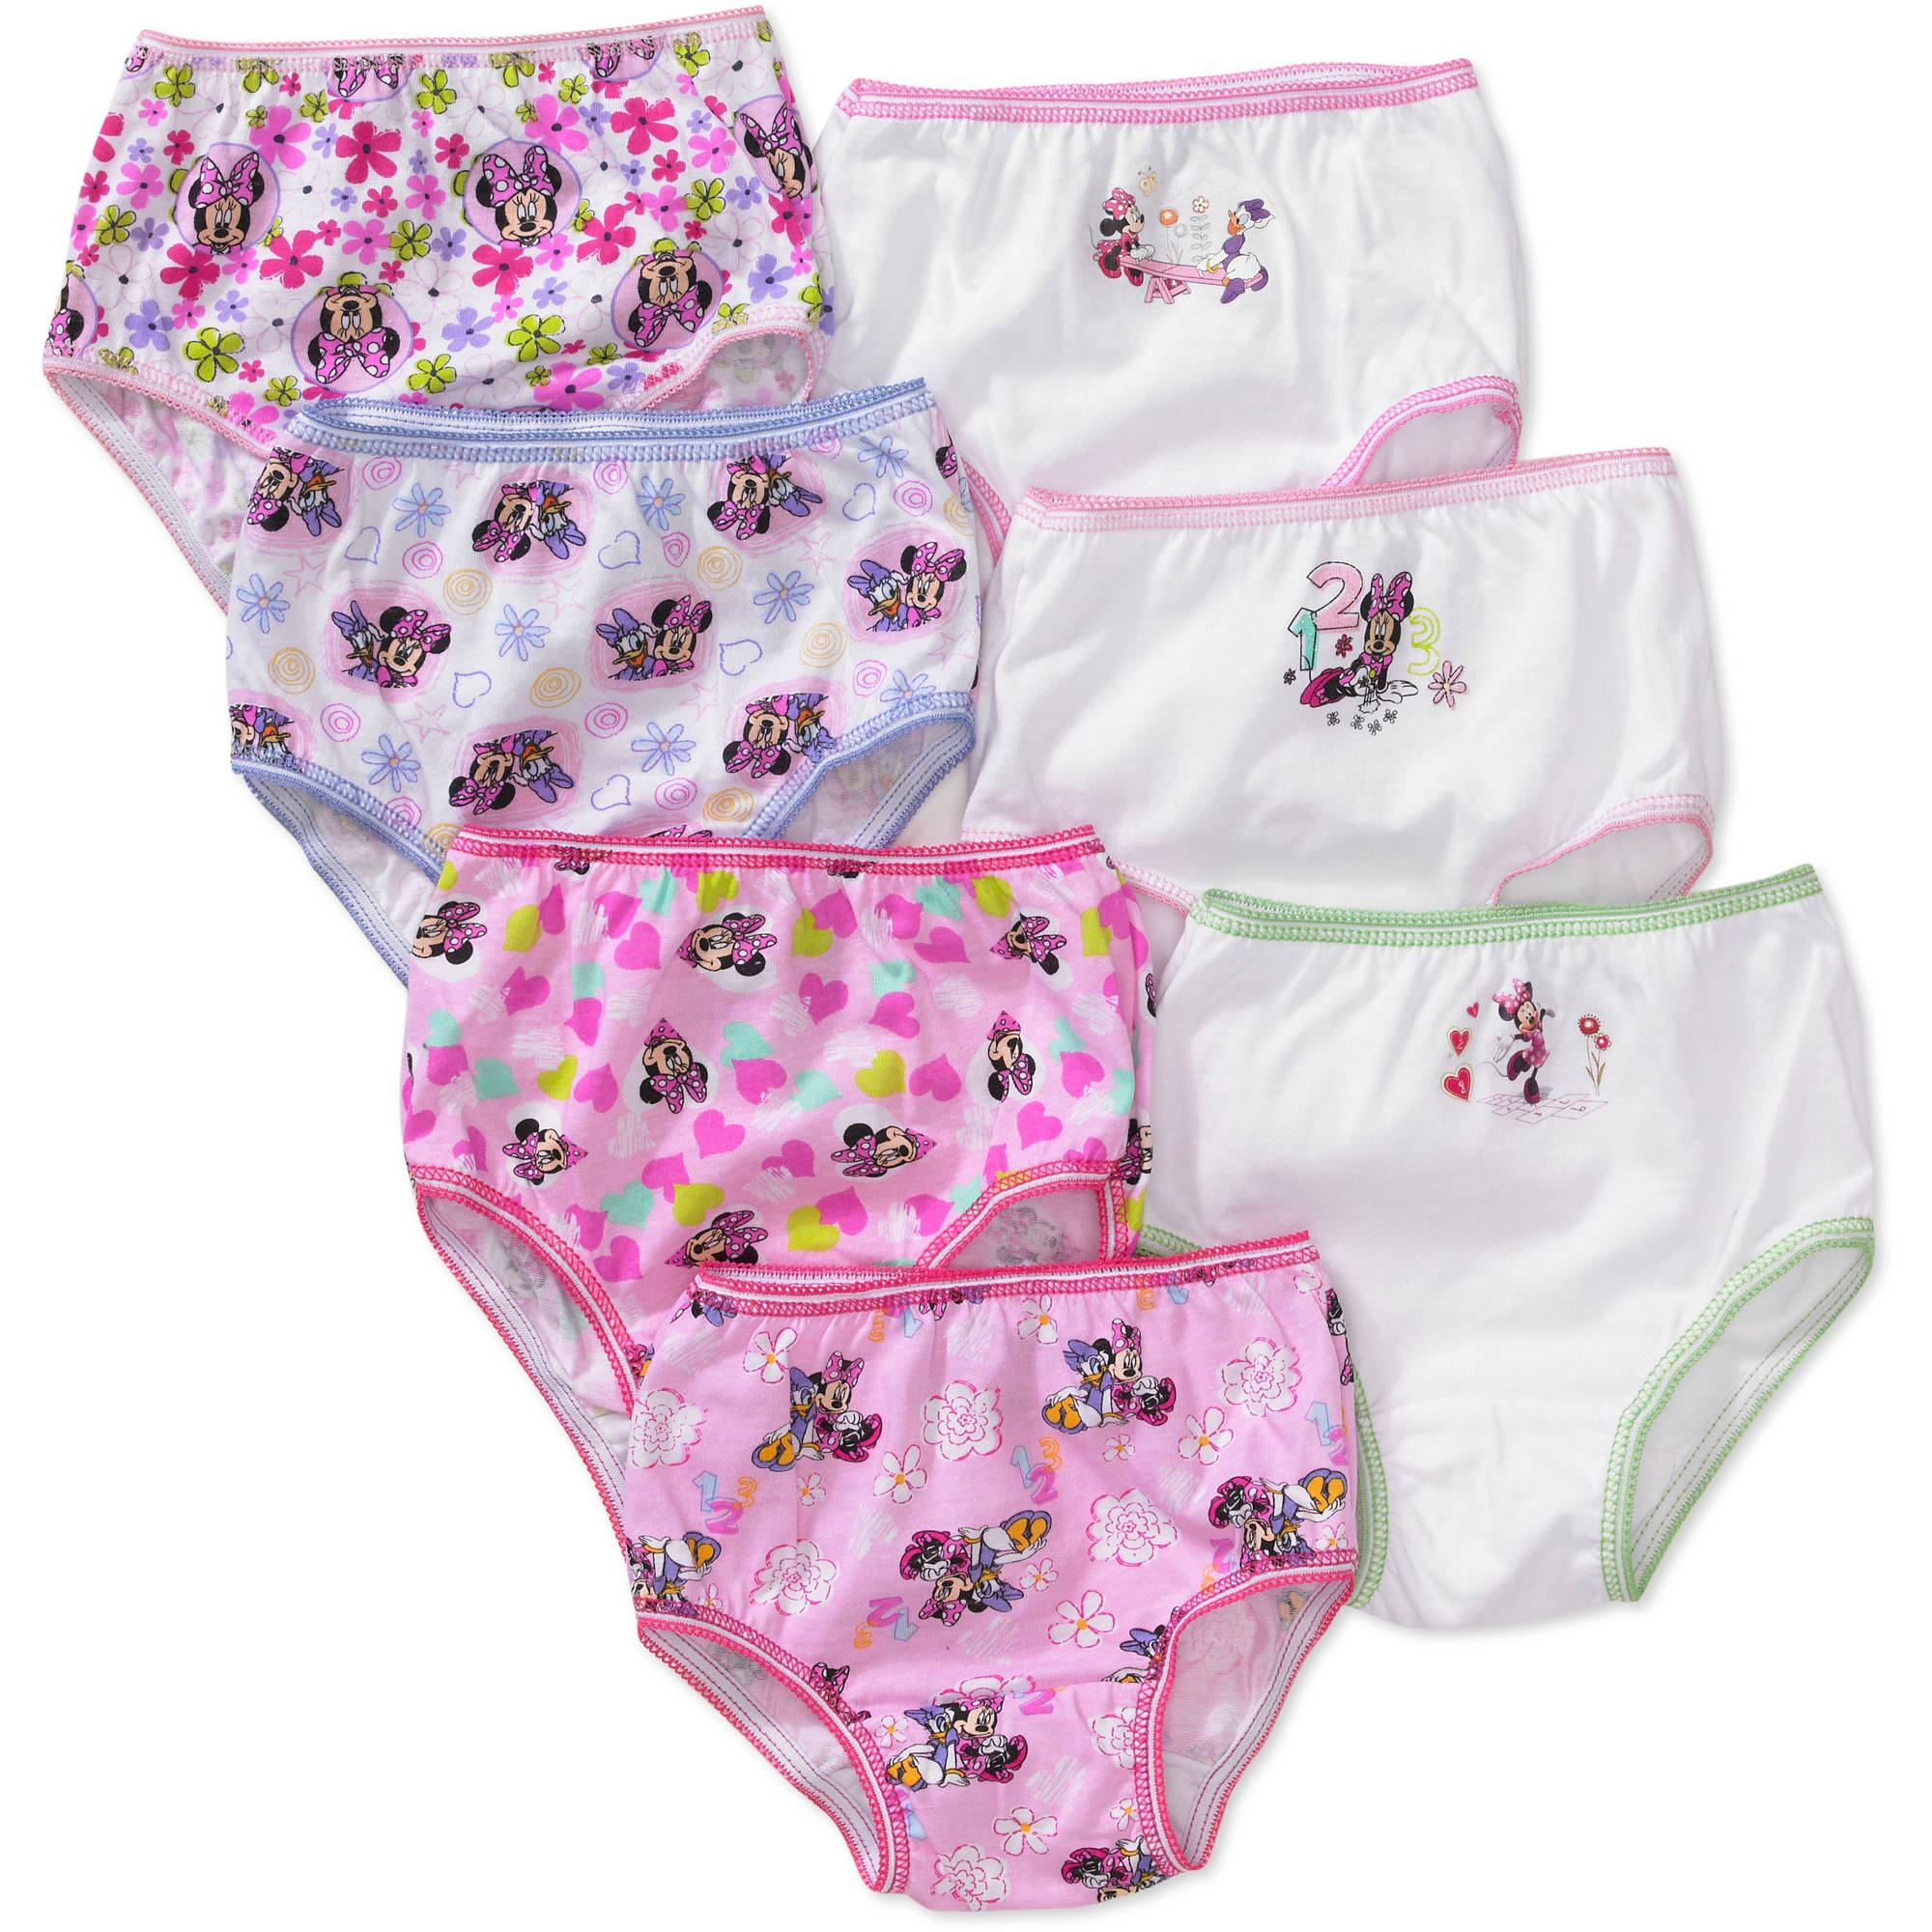 Disney Toddler Girl Minnie Mouse Underwear, 7-Pack